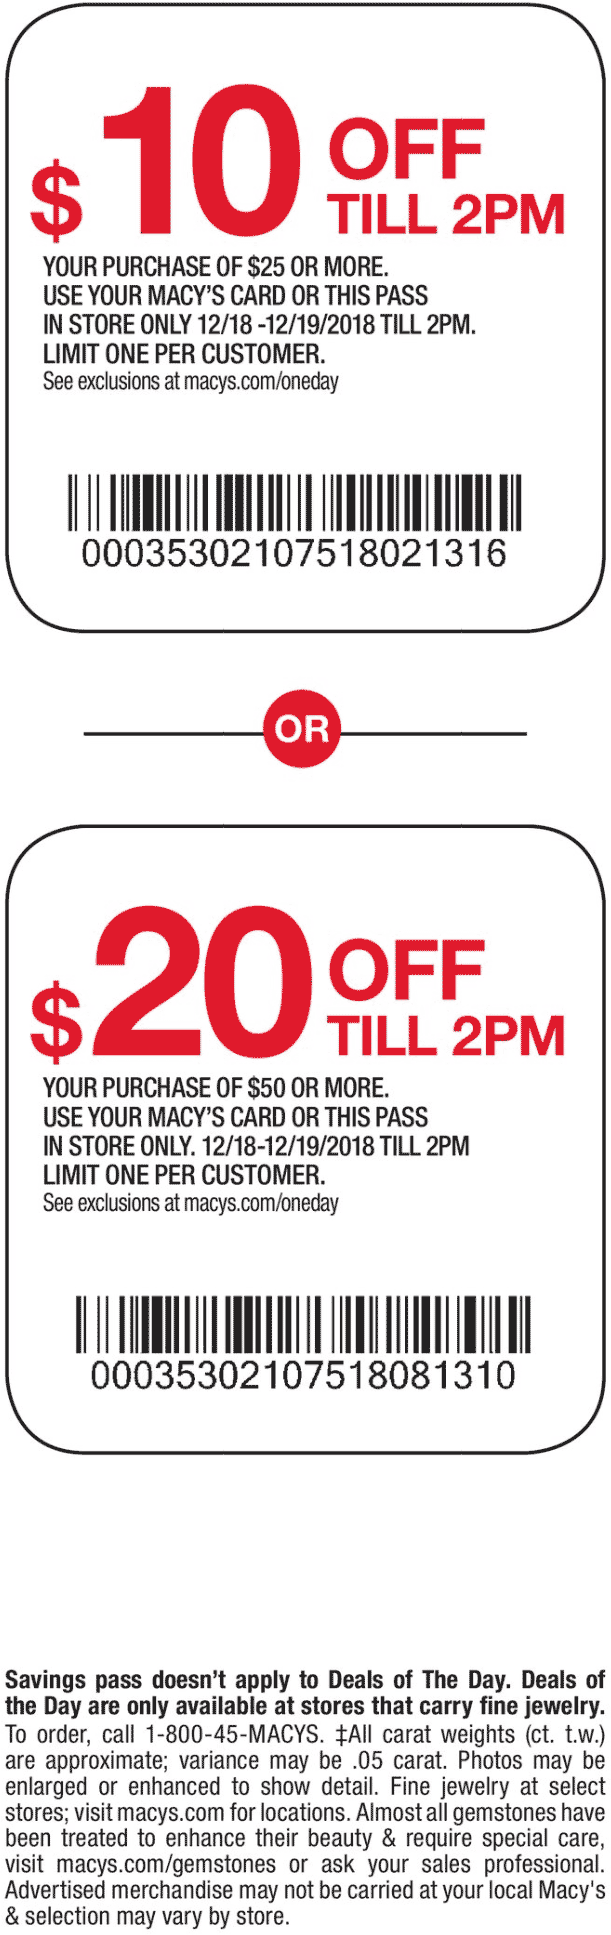 Macys Coupon May 2019 $10 off $25 & more til 2p at Macys